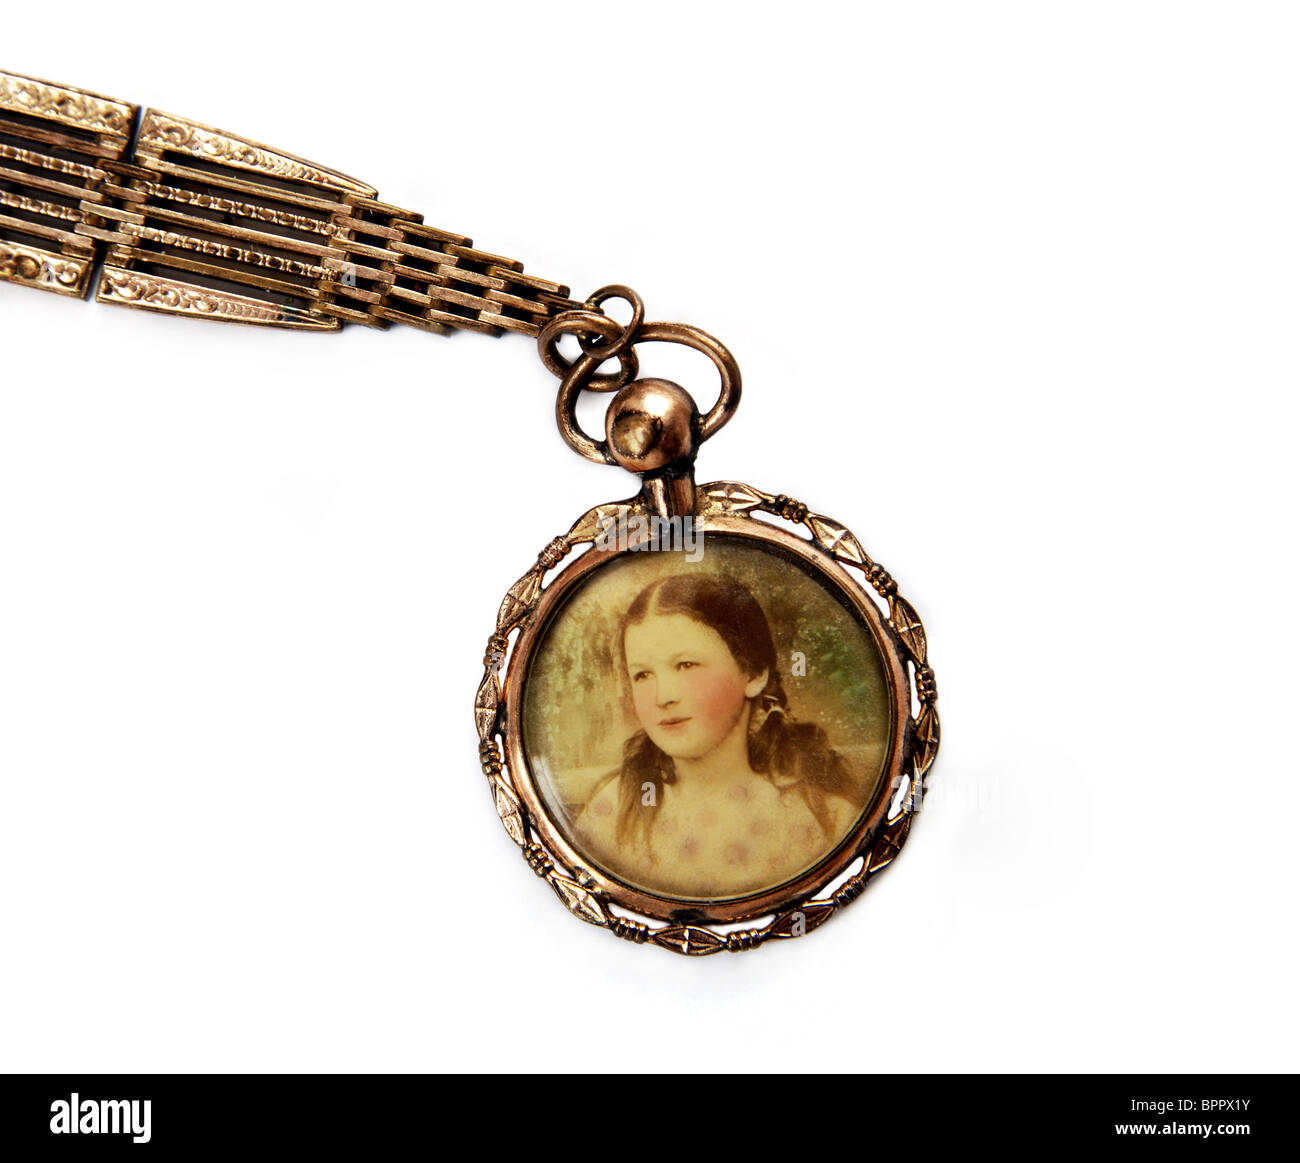 Antique locket with portrait of little girl, isolated on white background. Czech Republic, 1918. - Stock Image